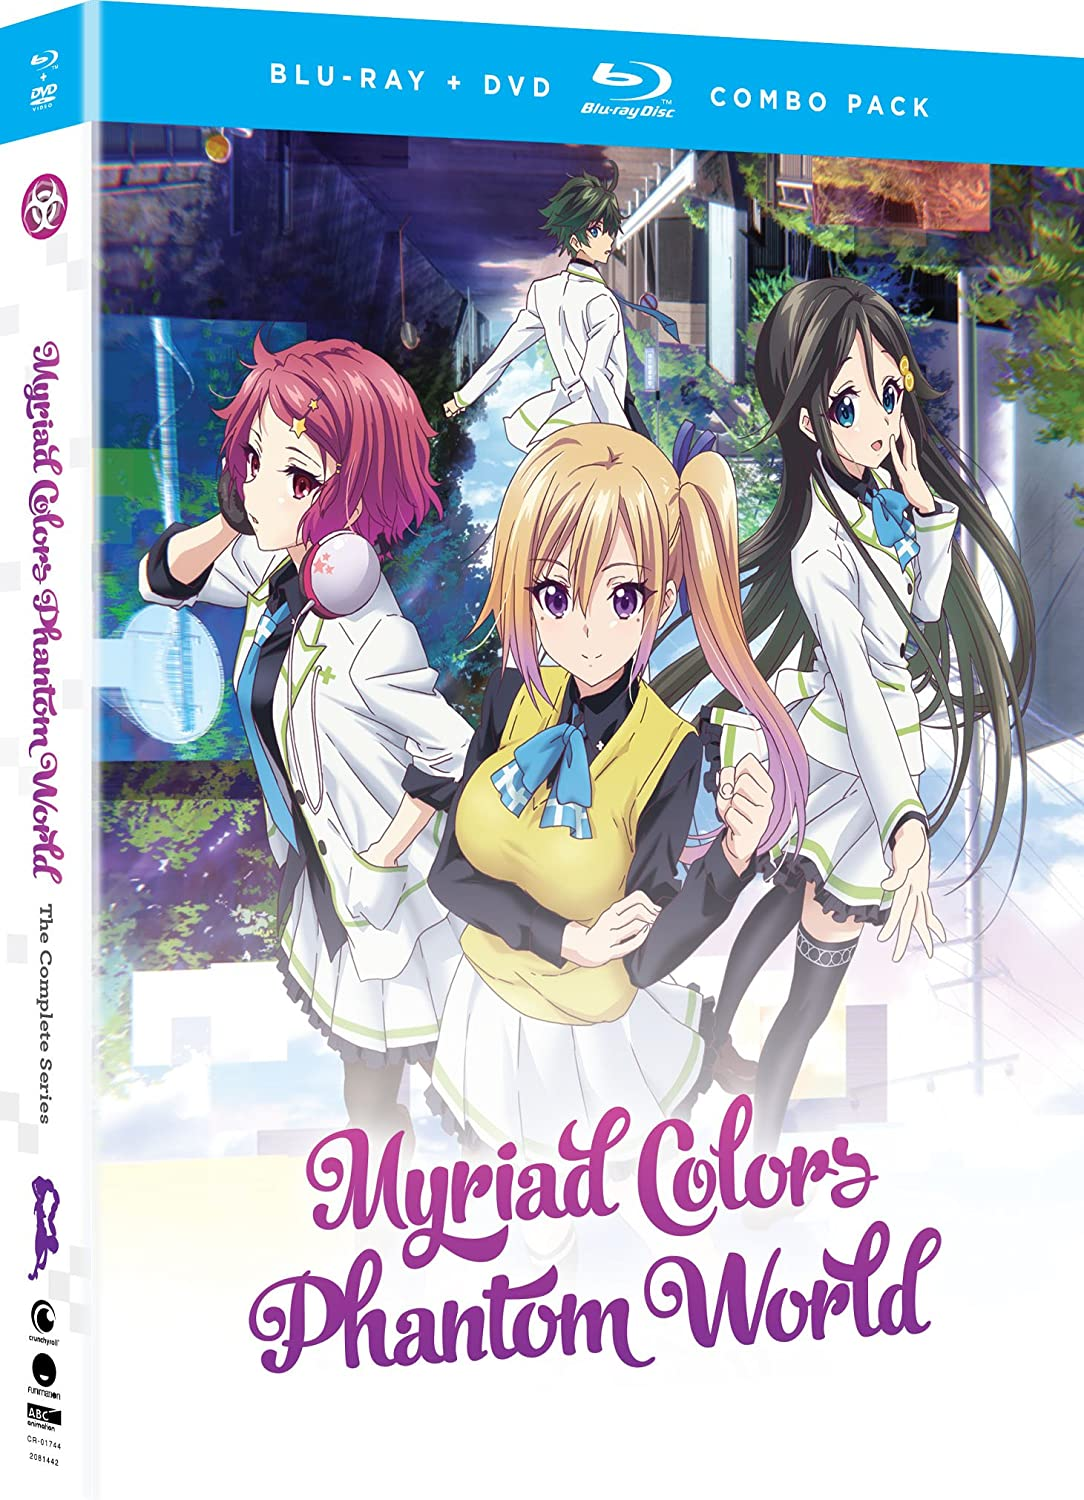 Myriad Colors Phantom World: Comp Series [Blu-ray] [Import] B074WVBZJS